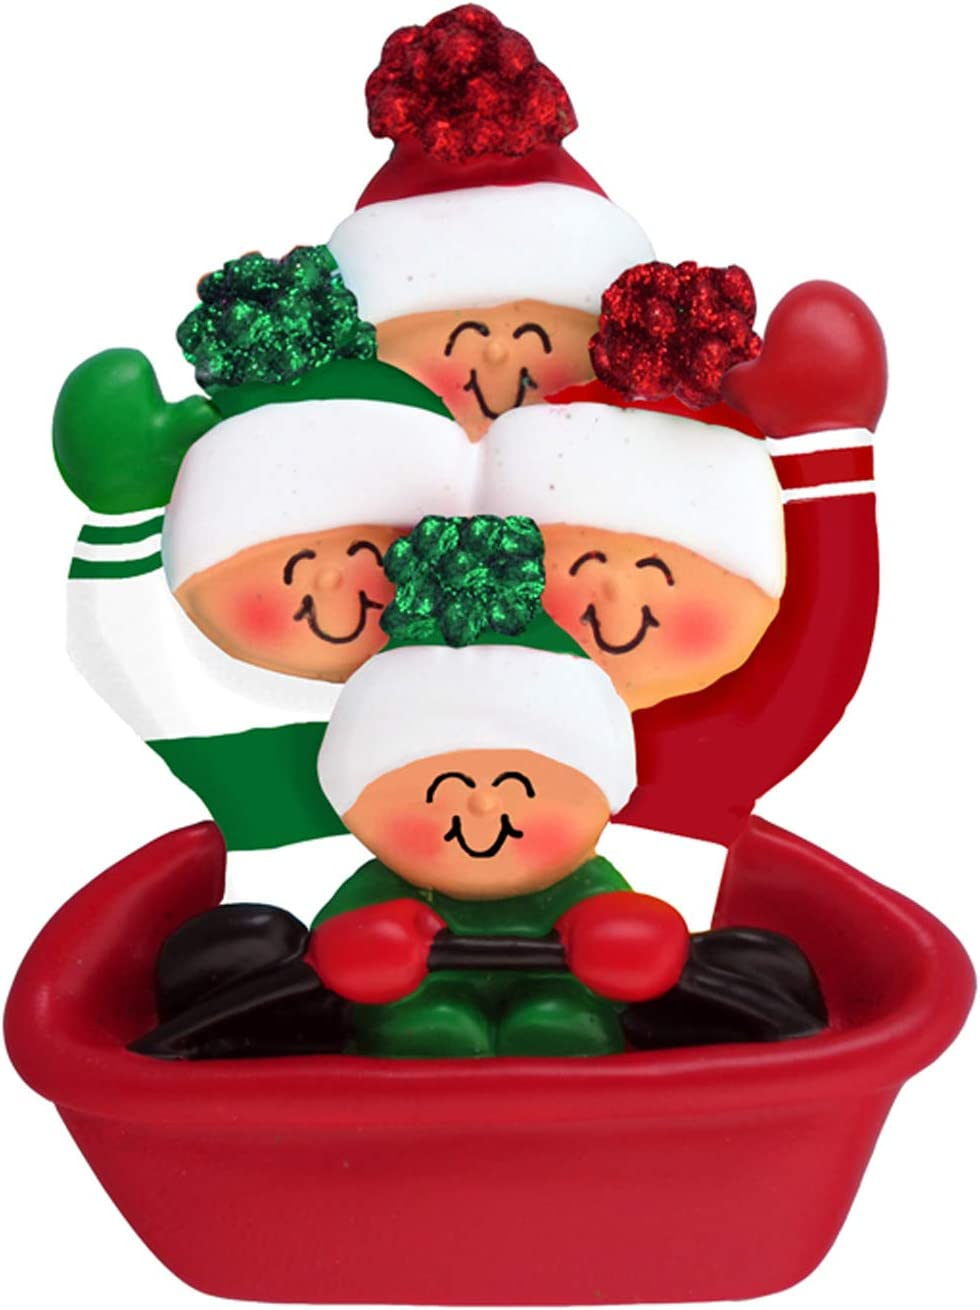 Amazon Com Personalized Sledding Family Of 4 Christmas Tree Ornament 2020 Parents Children Friends Glitter Bow Hat Tubing Slide Downhill Snow Winter Activity Tradition Free Customization Four Home Kitchen